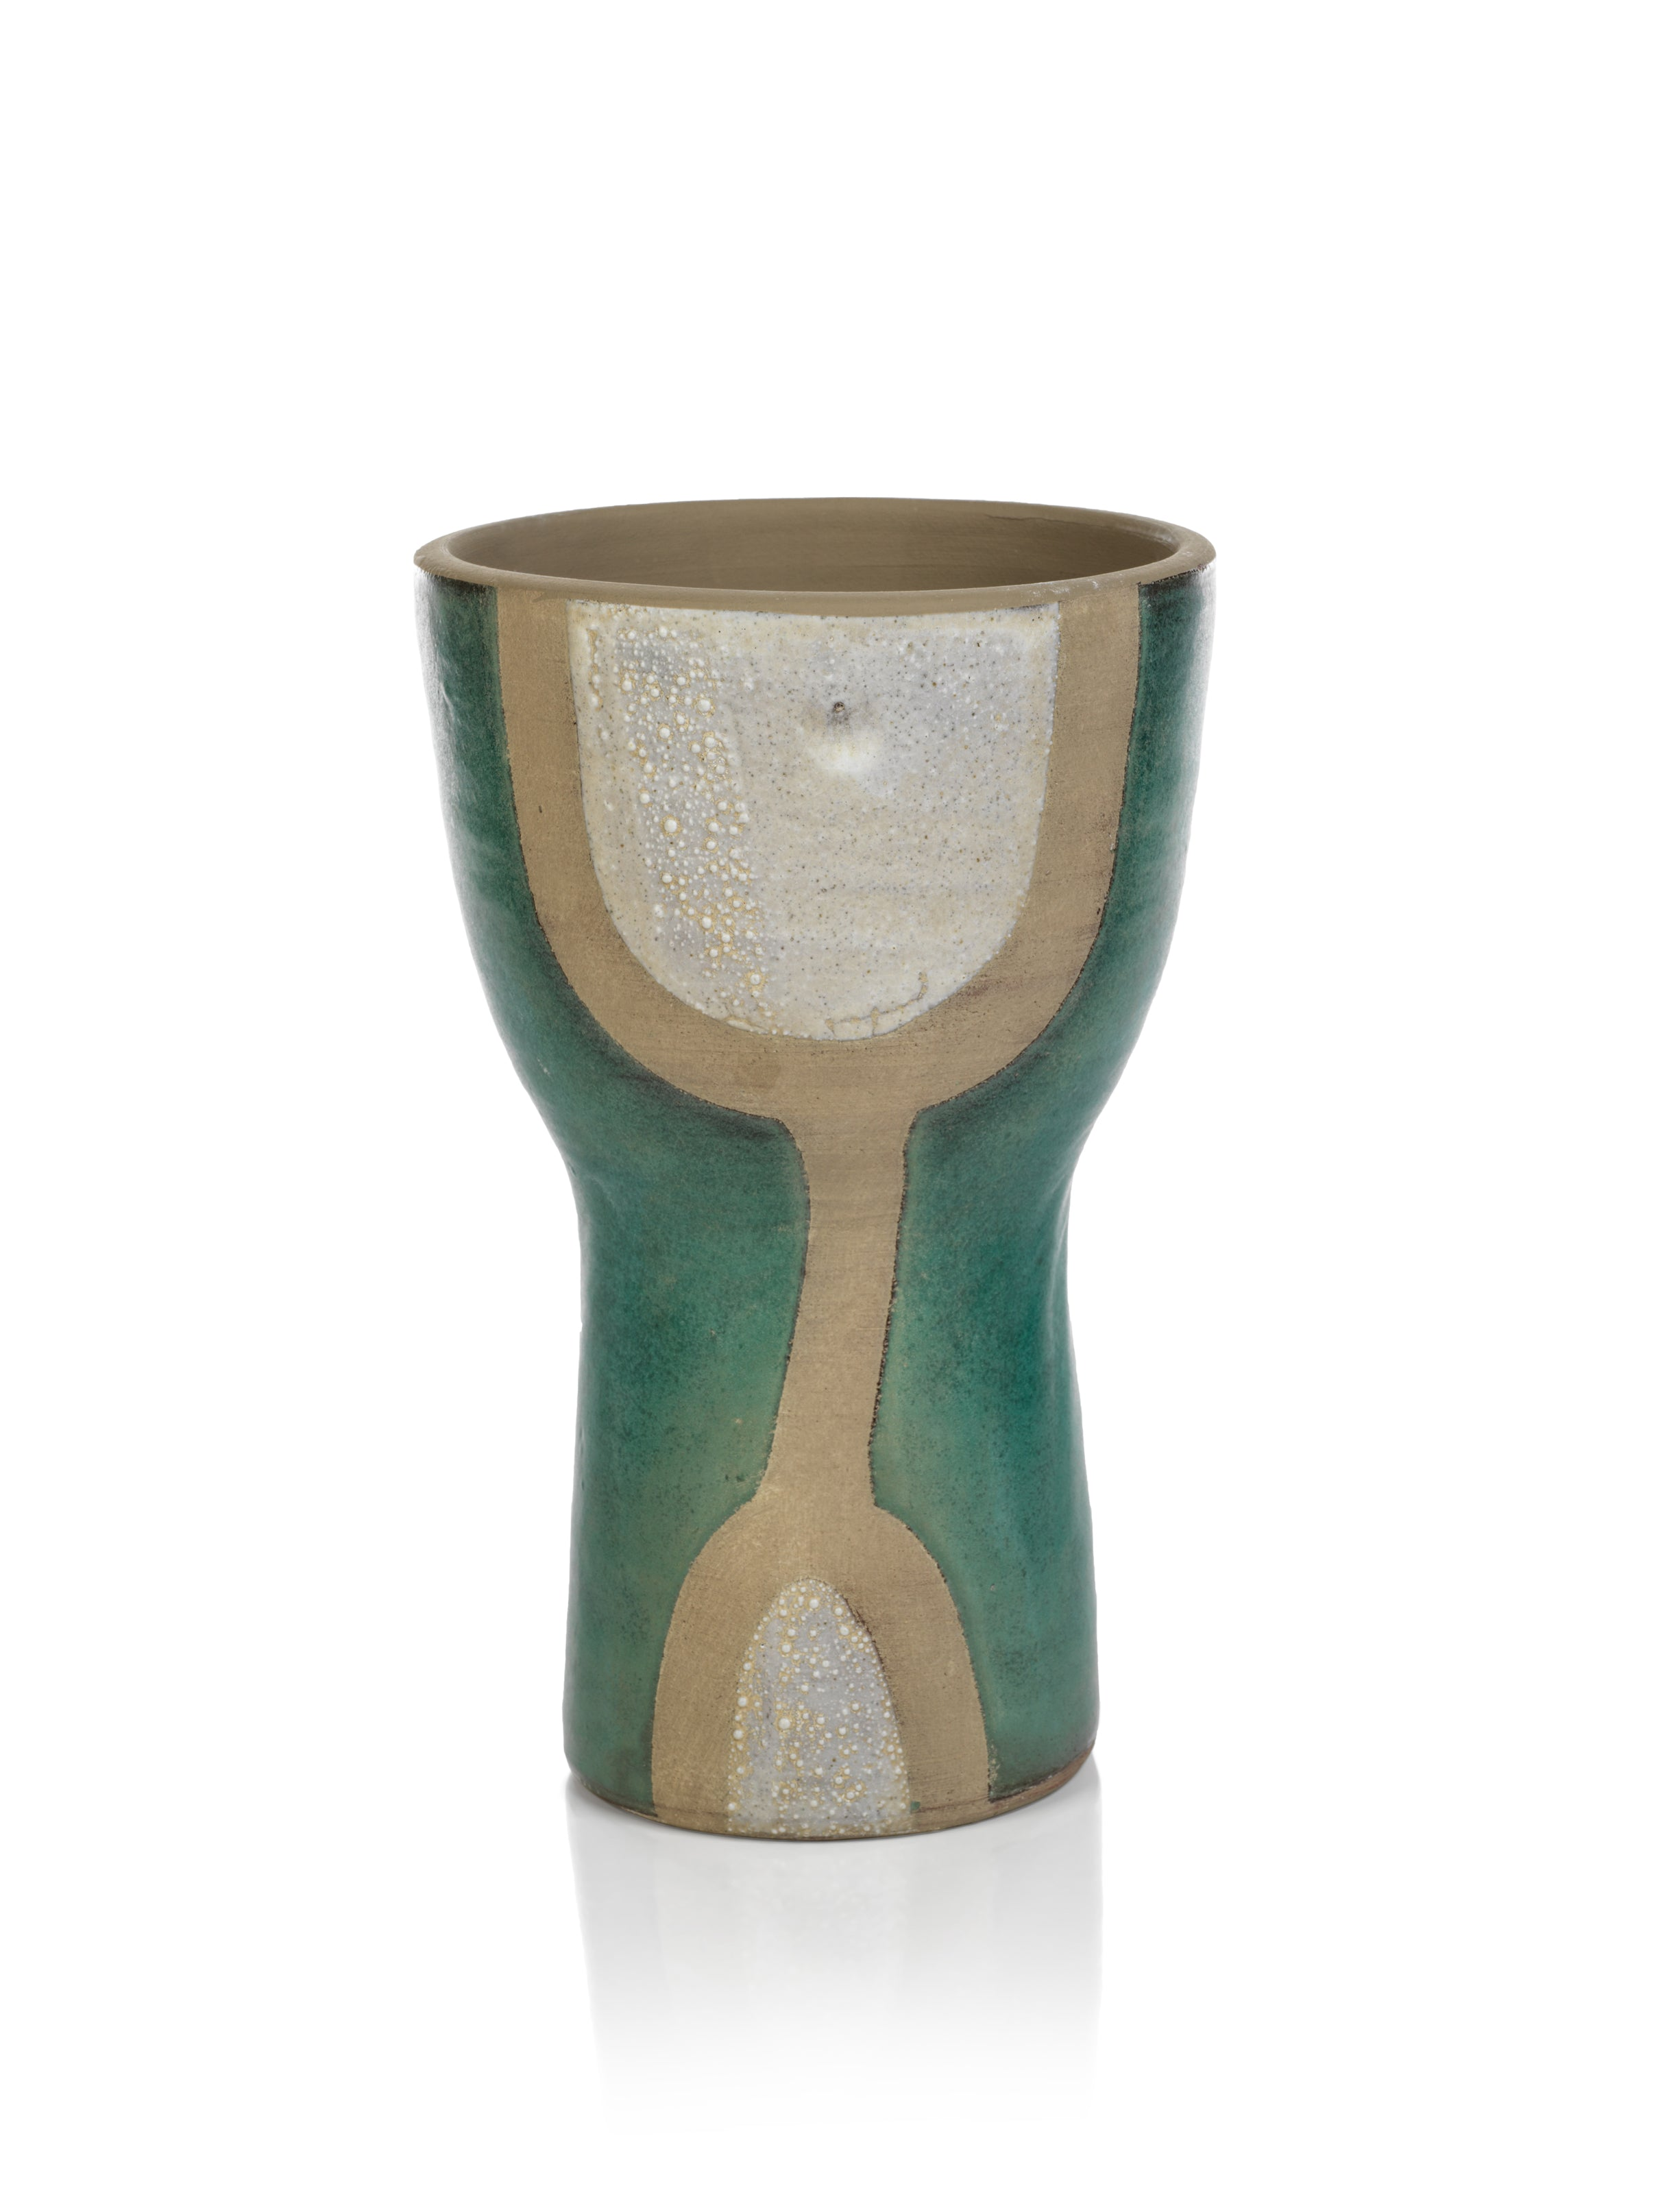 Nok Terracotta Art Design Collection - CARLYLE AVENUE